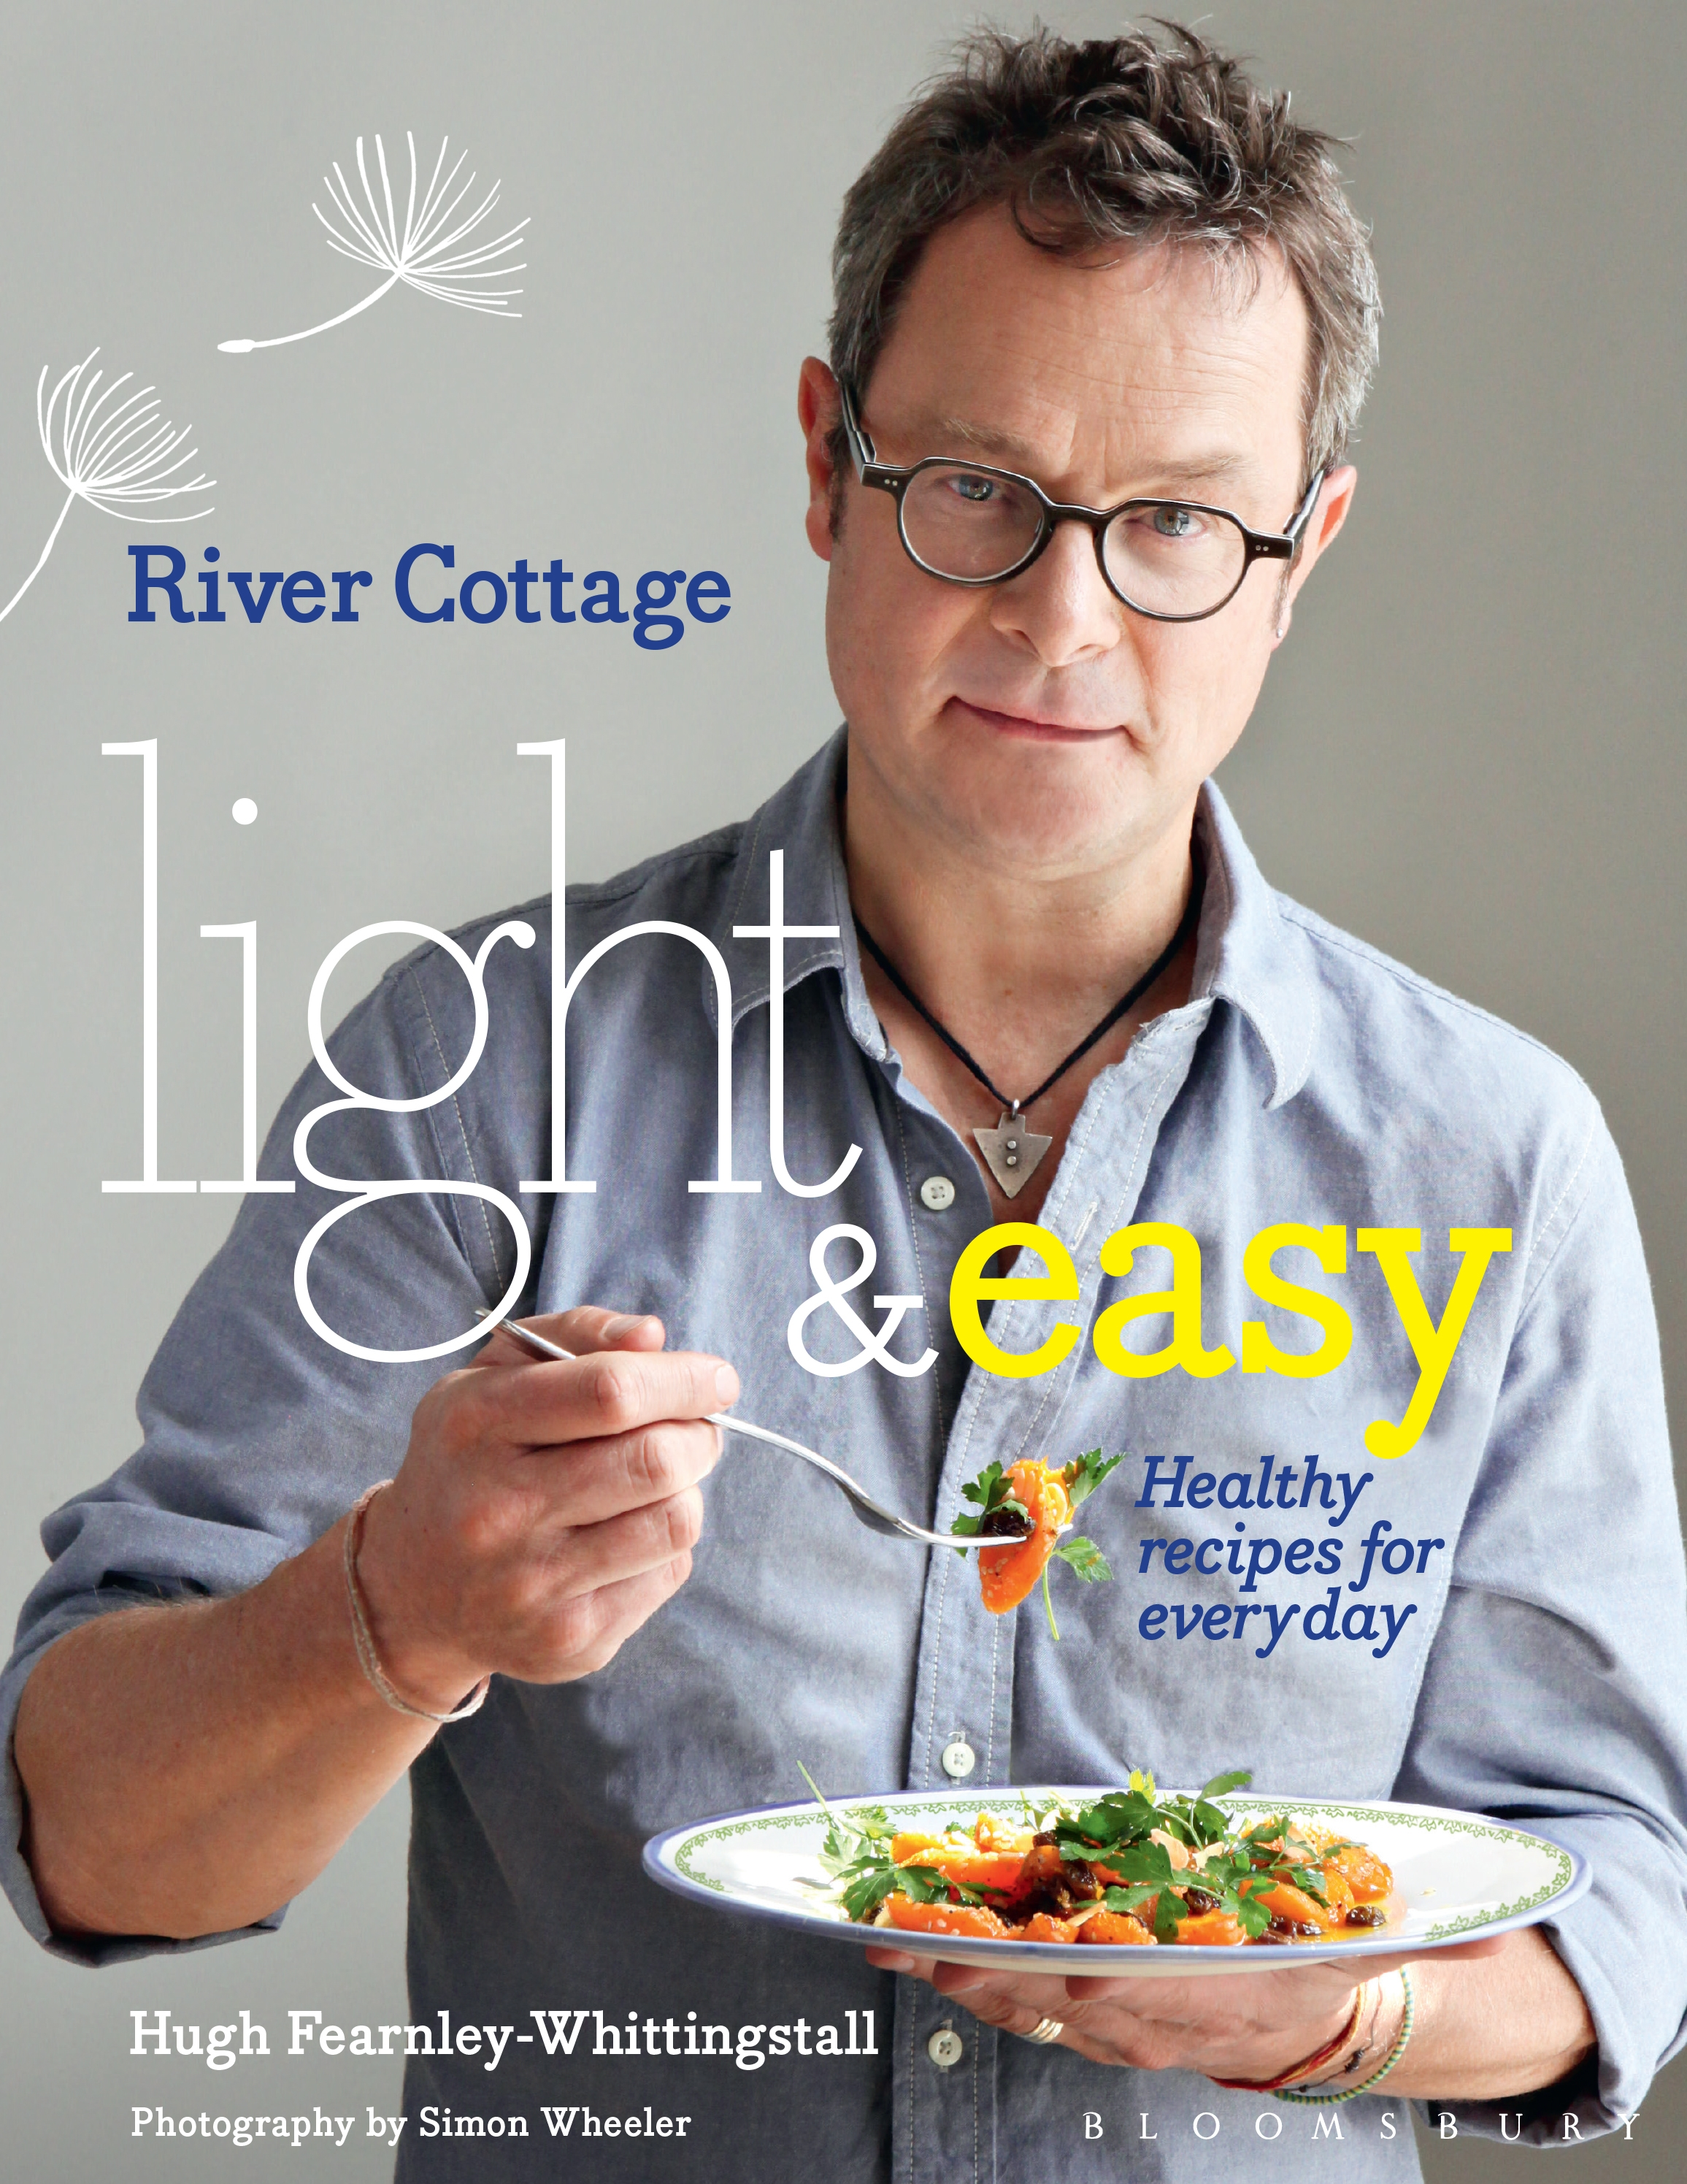 River Cottage Light & Easy Healthy Recipes for Every Day